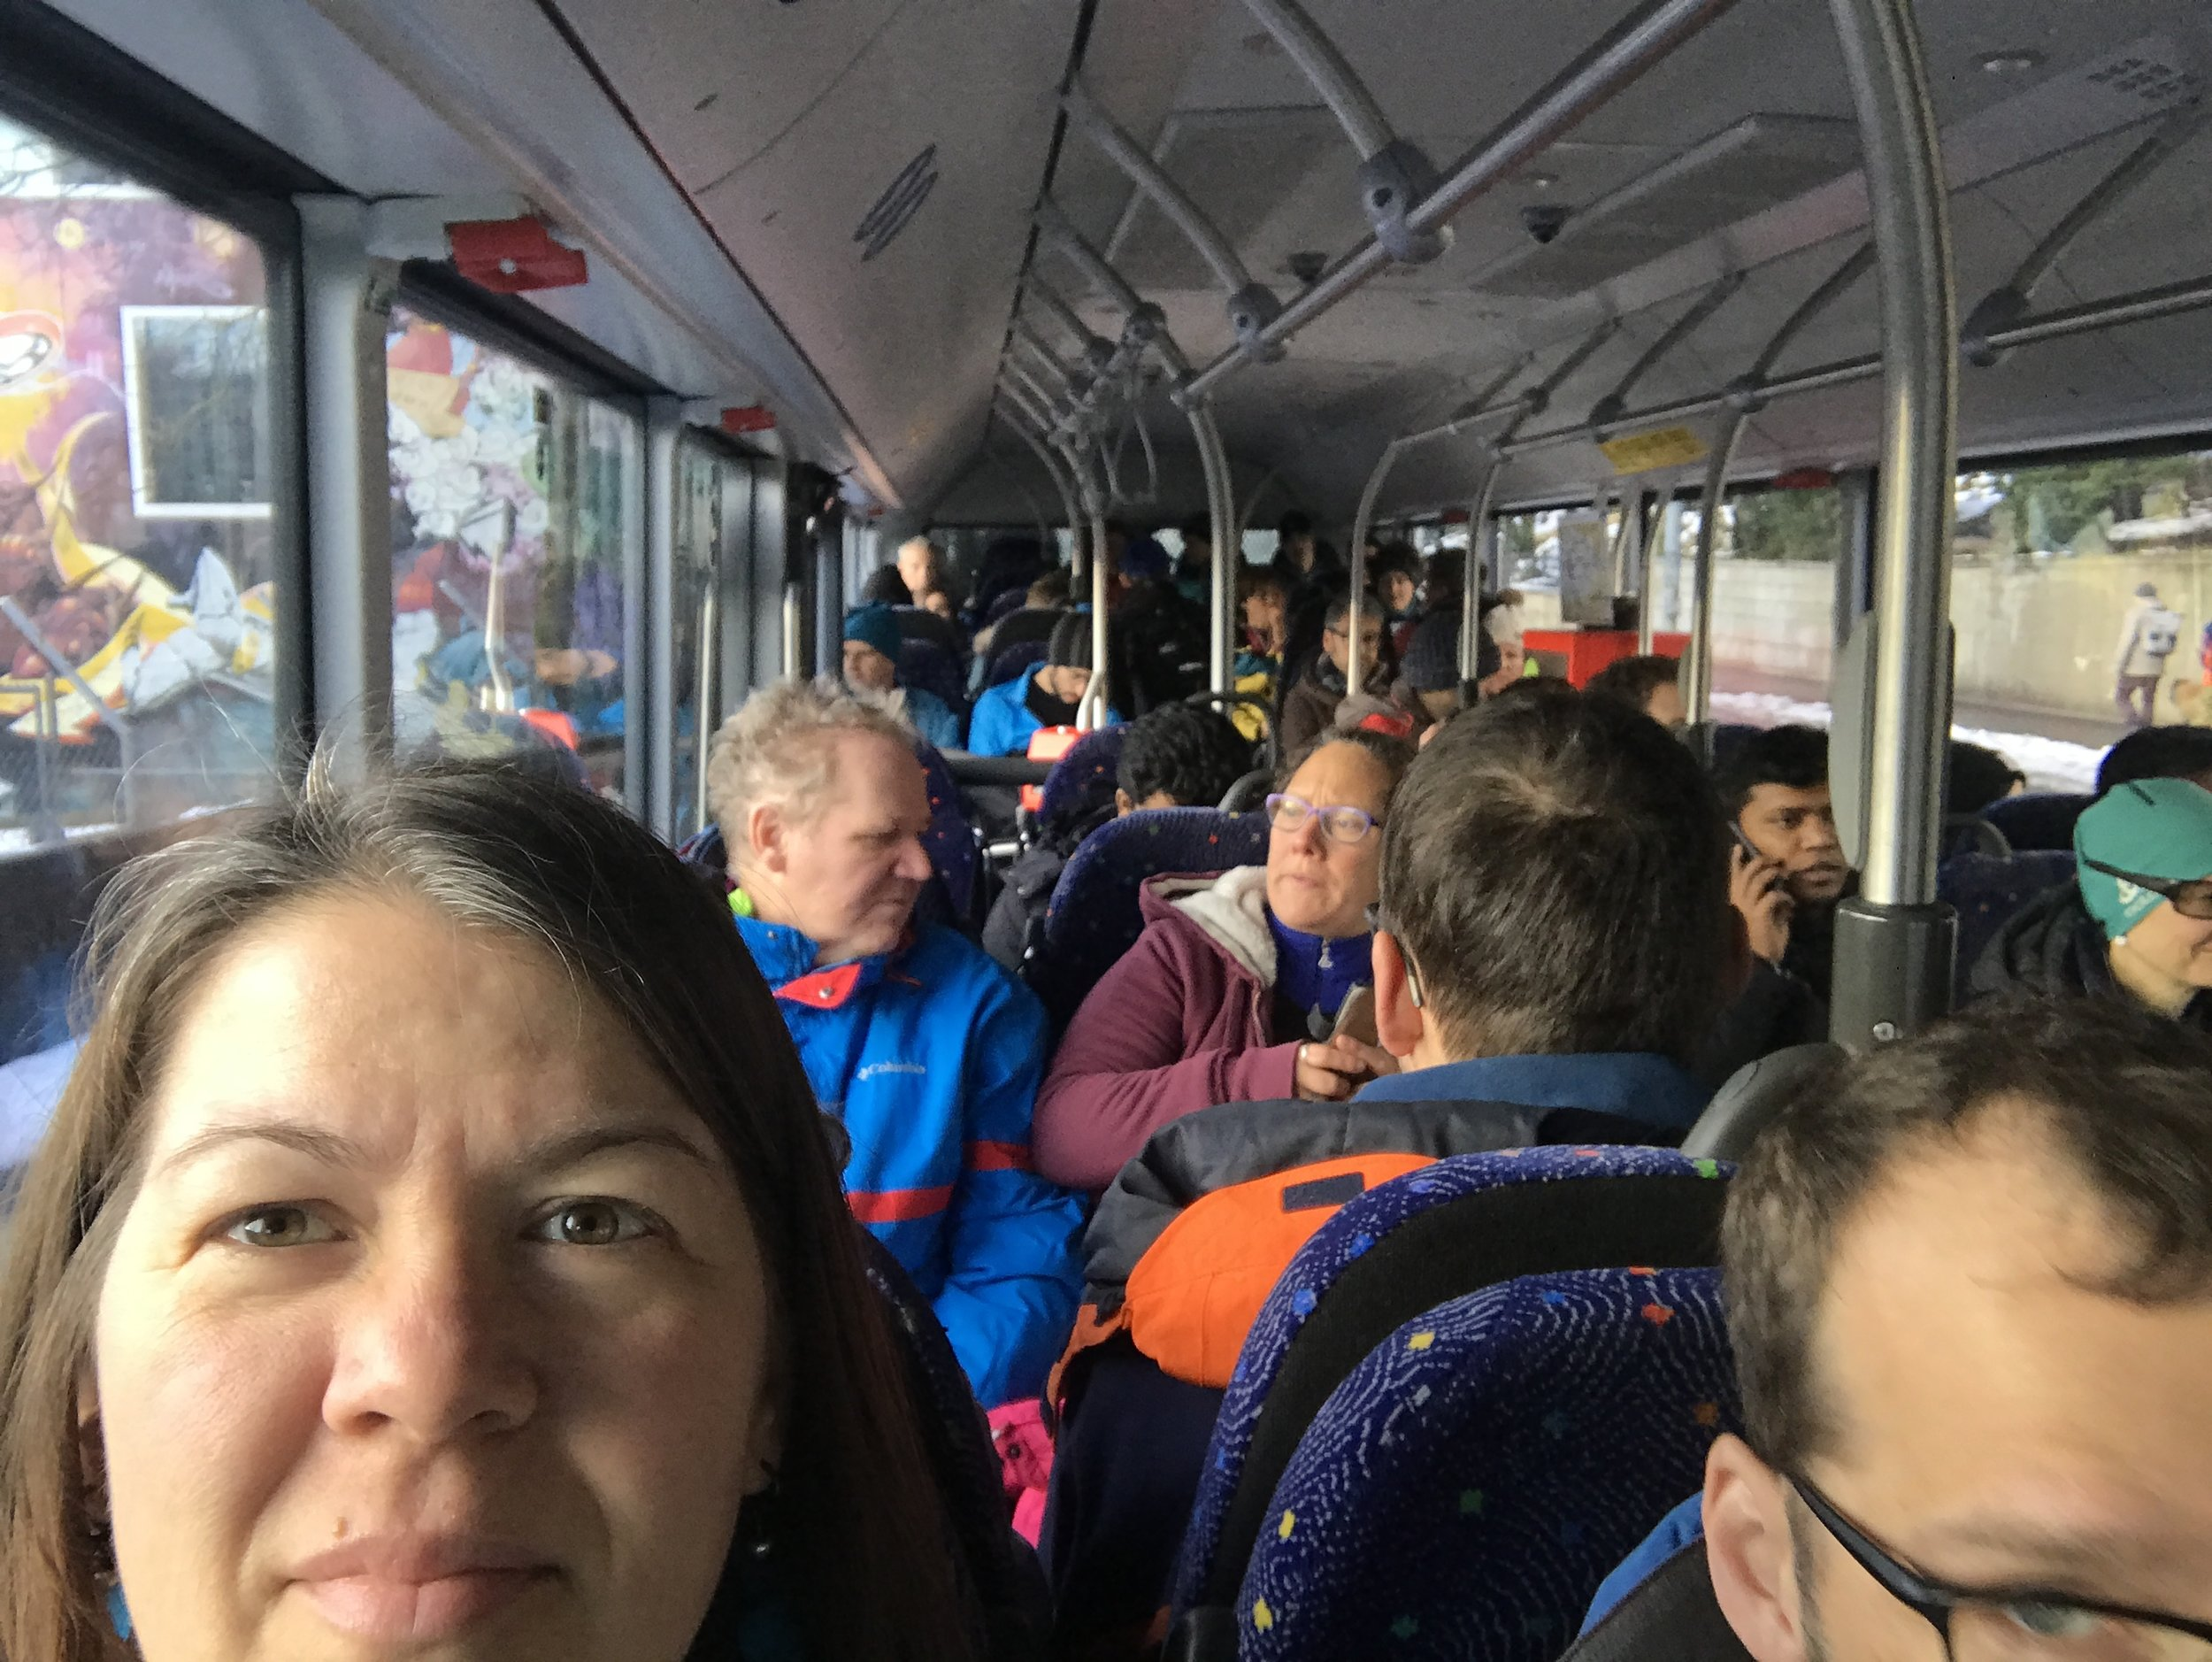 There was standing room only in the bus until a second bus arrived to take the overflow.